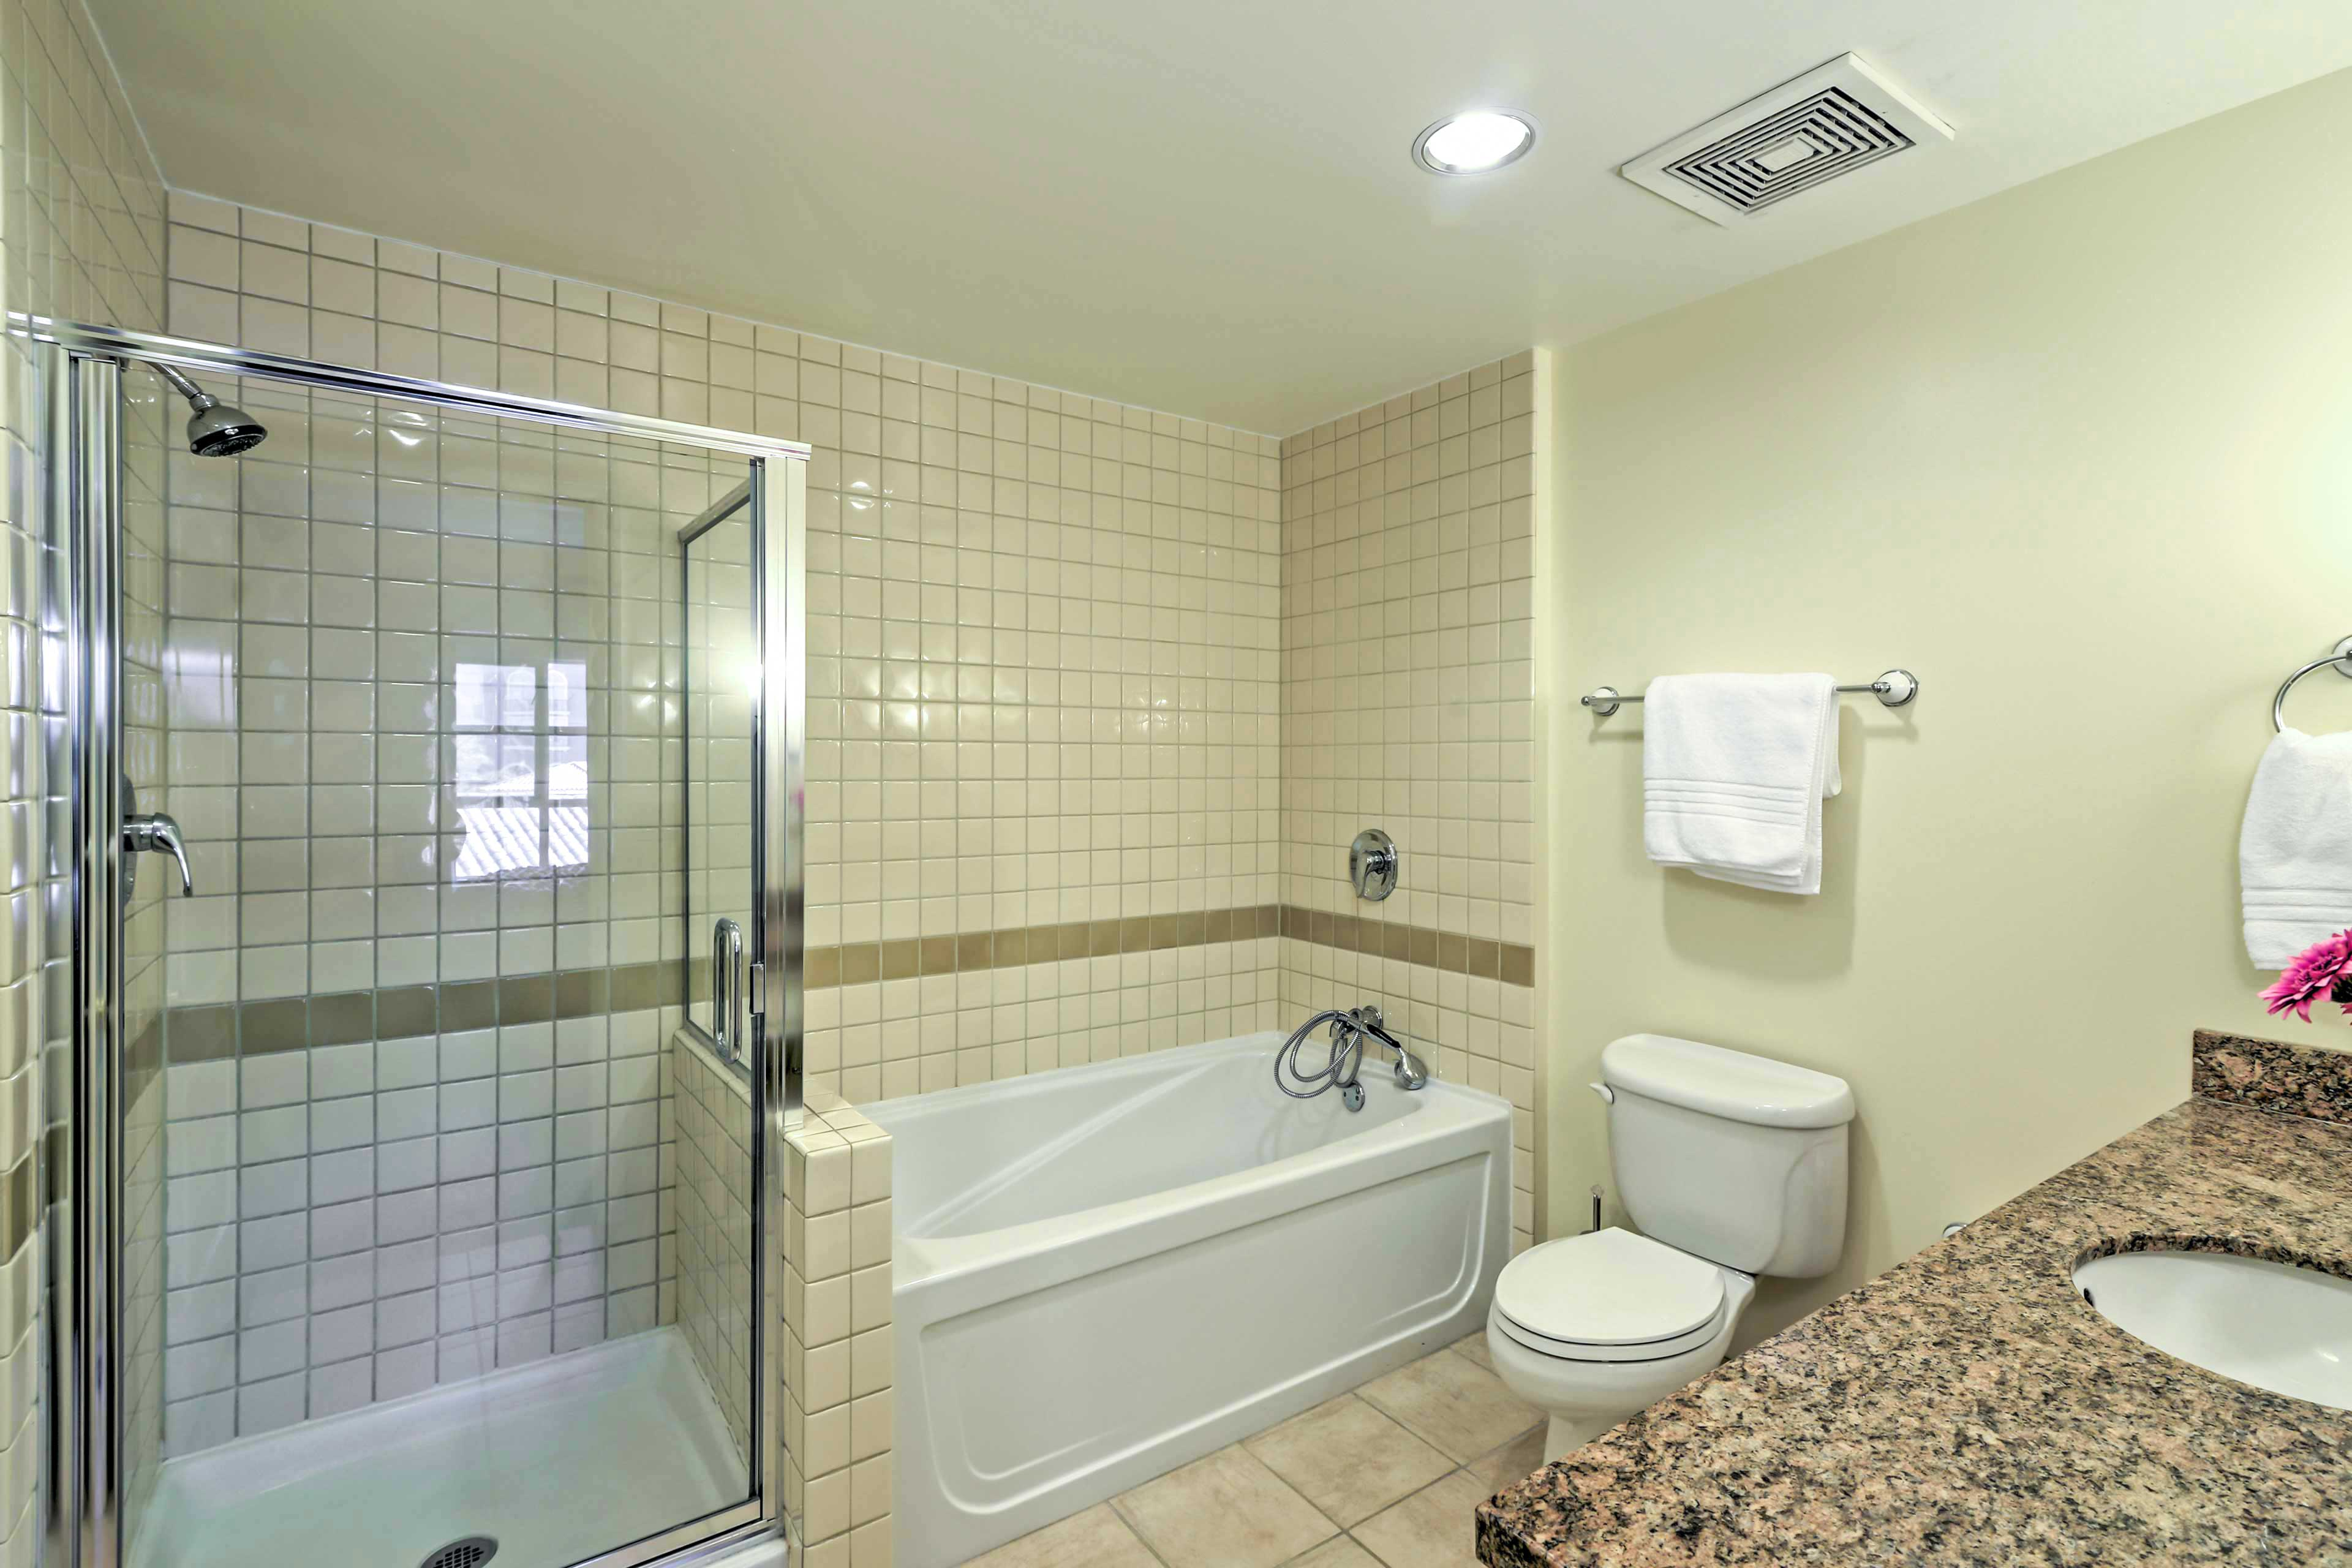 Get ready for the day's events in this pristine full bathroom.